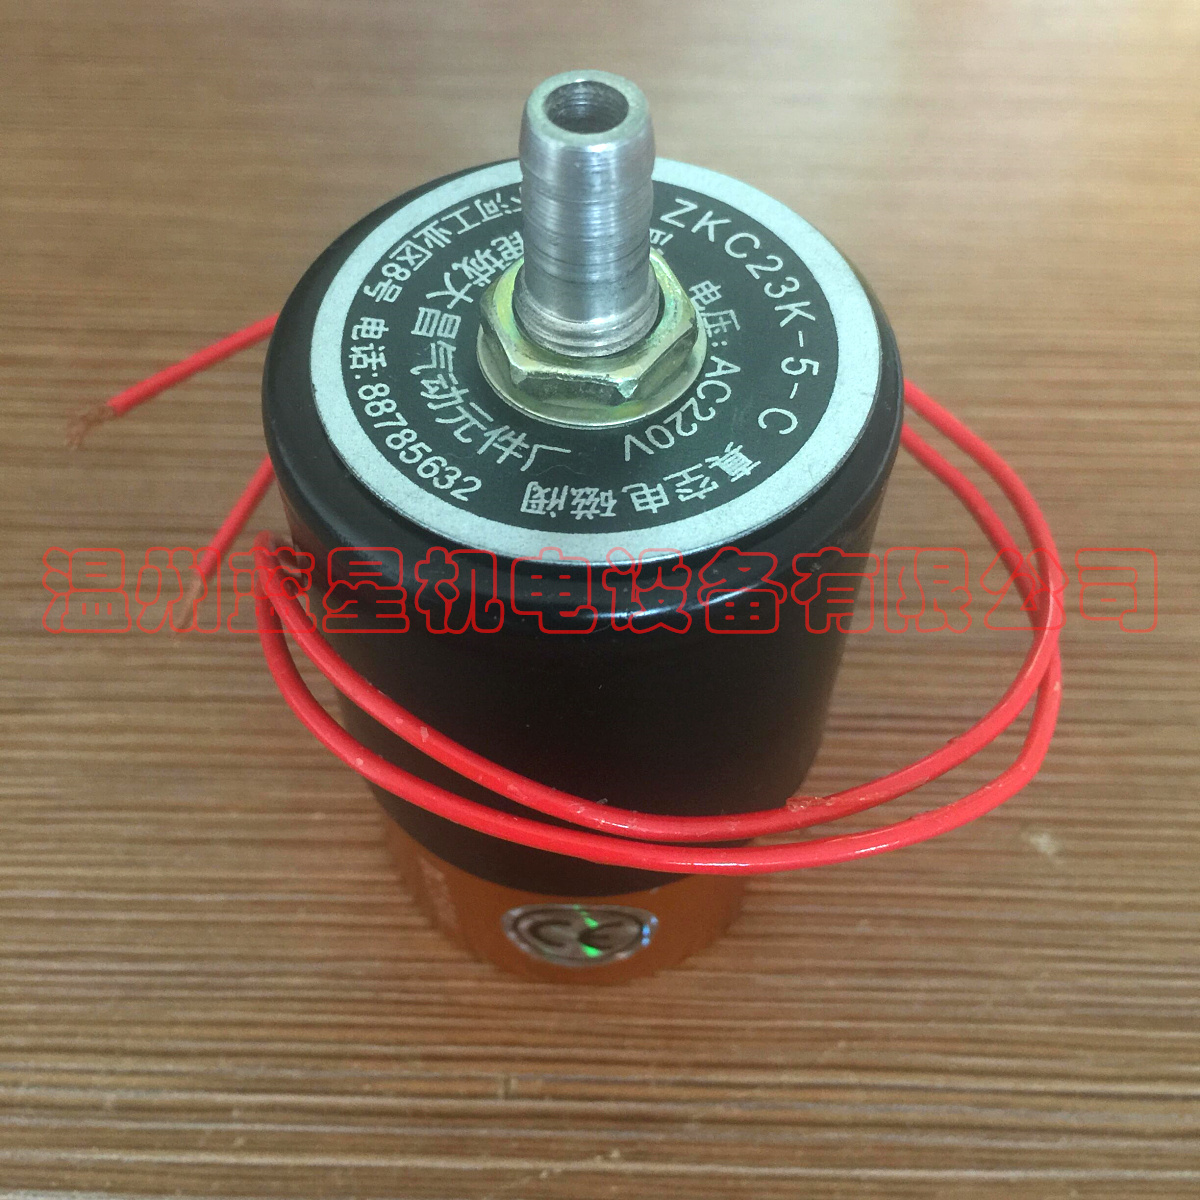 Vacuum solenoid valve two three-way ZKC23k-5-C Rc1/8 5 way pilot solenoid valve sy3220 4g 02